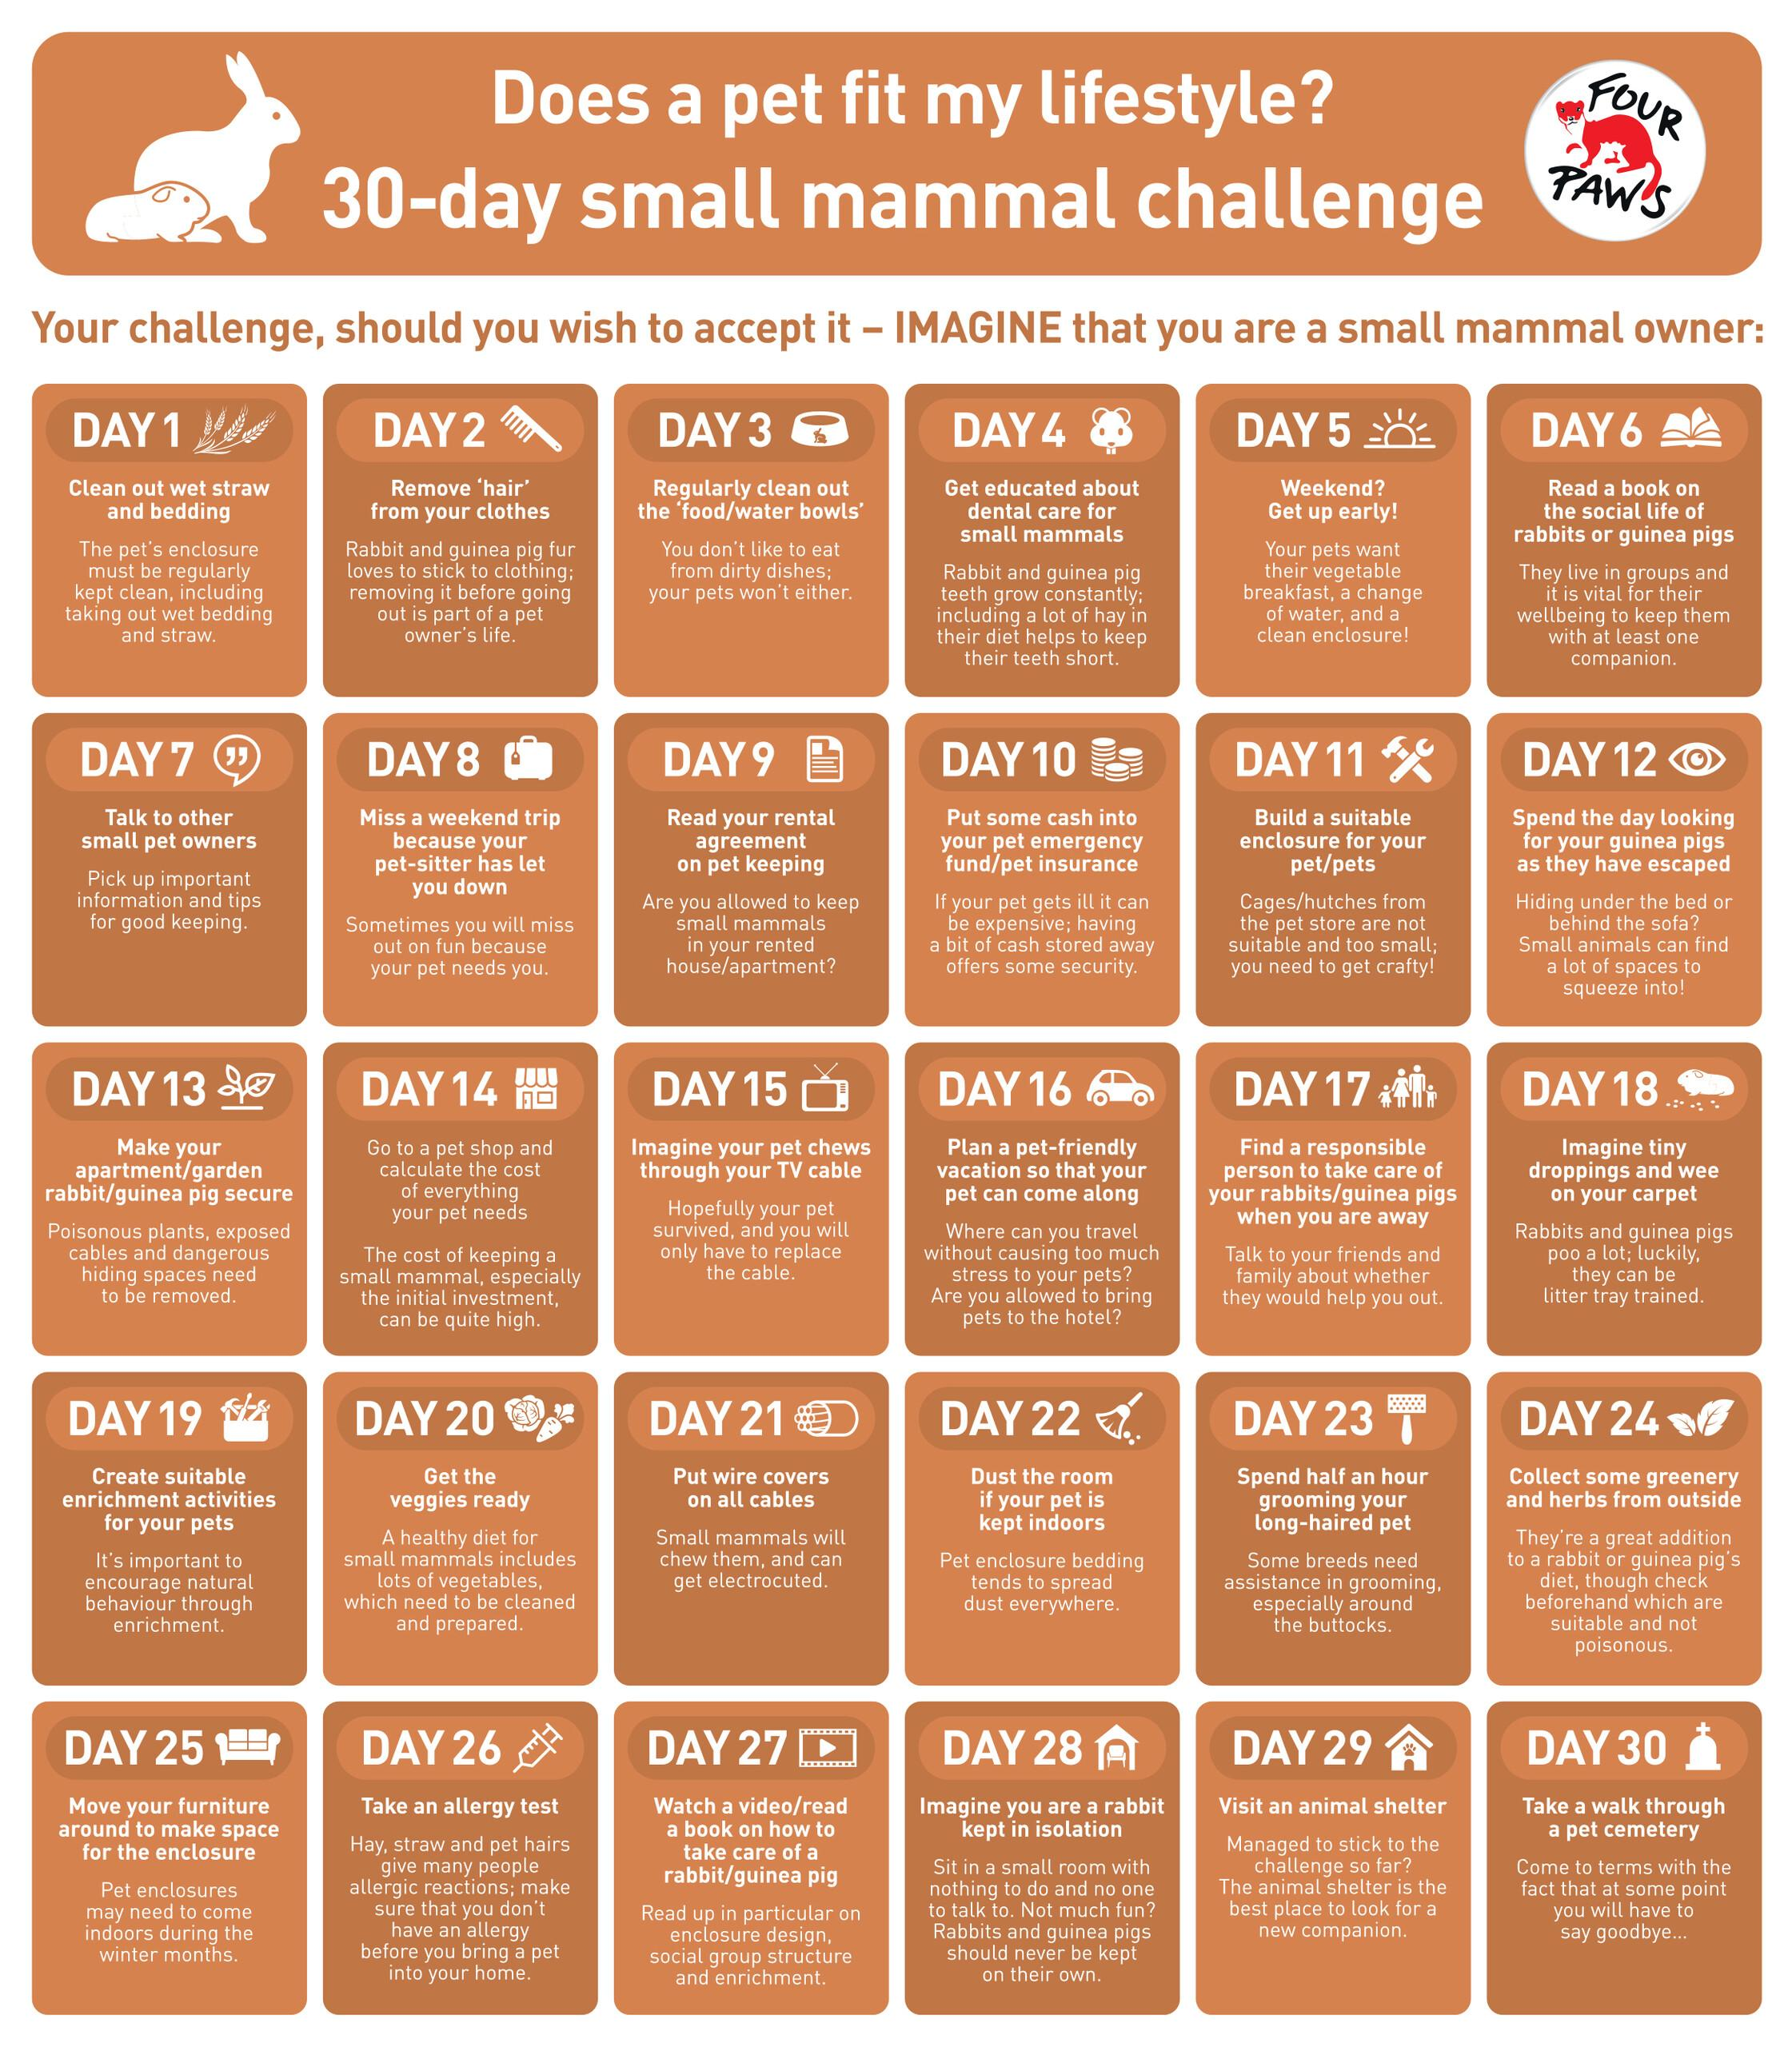 FOUR PAWS 30-day small mammal challenge